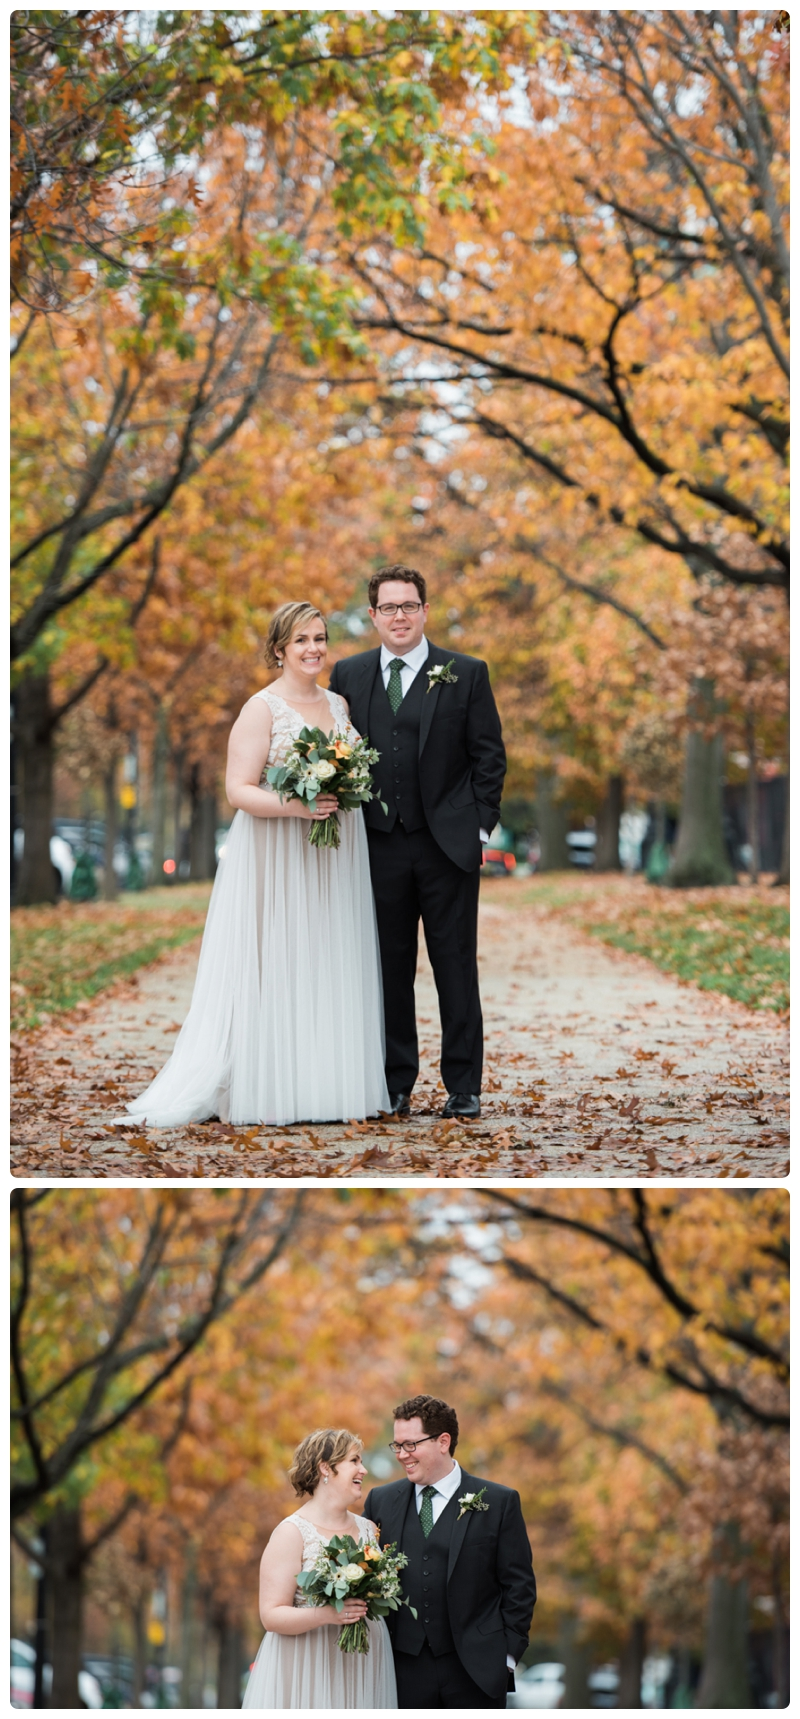 Wedding in Washington DC by Rachael Foster Photography_0013.jpg